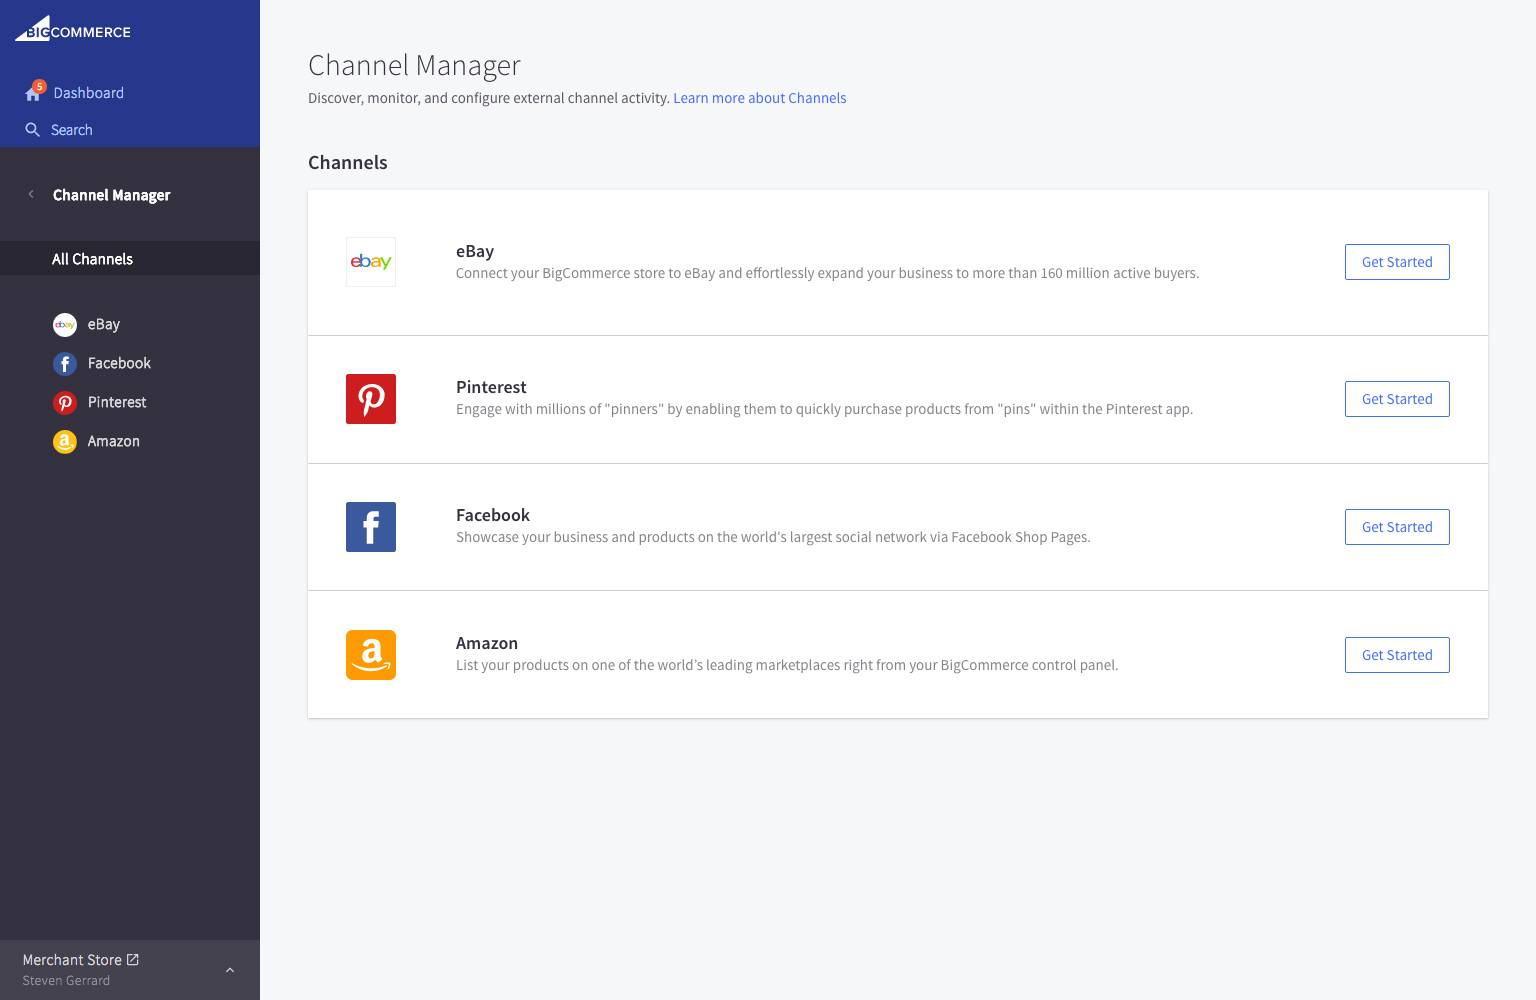 eBay Channel Manager